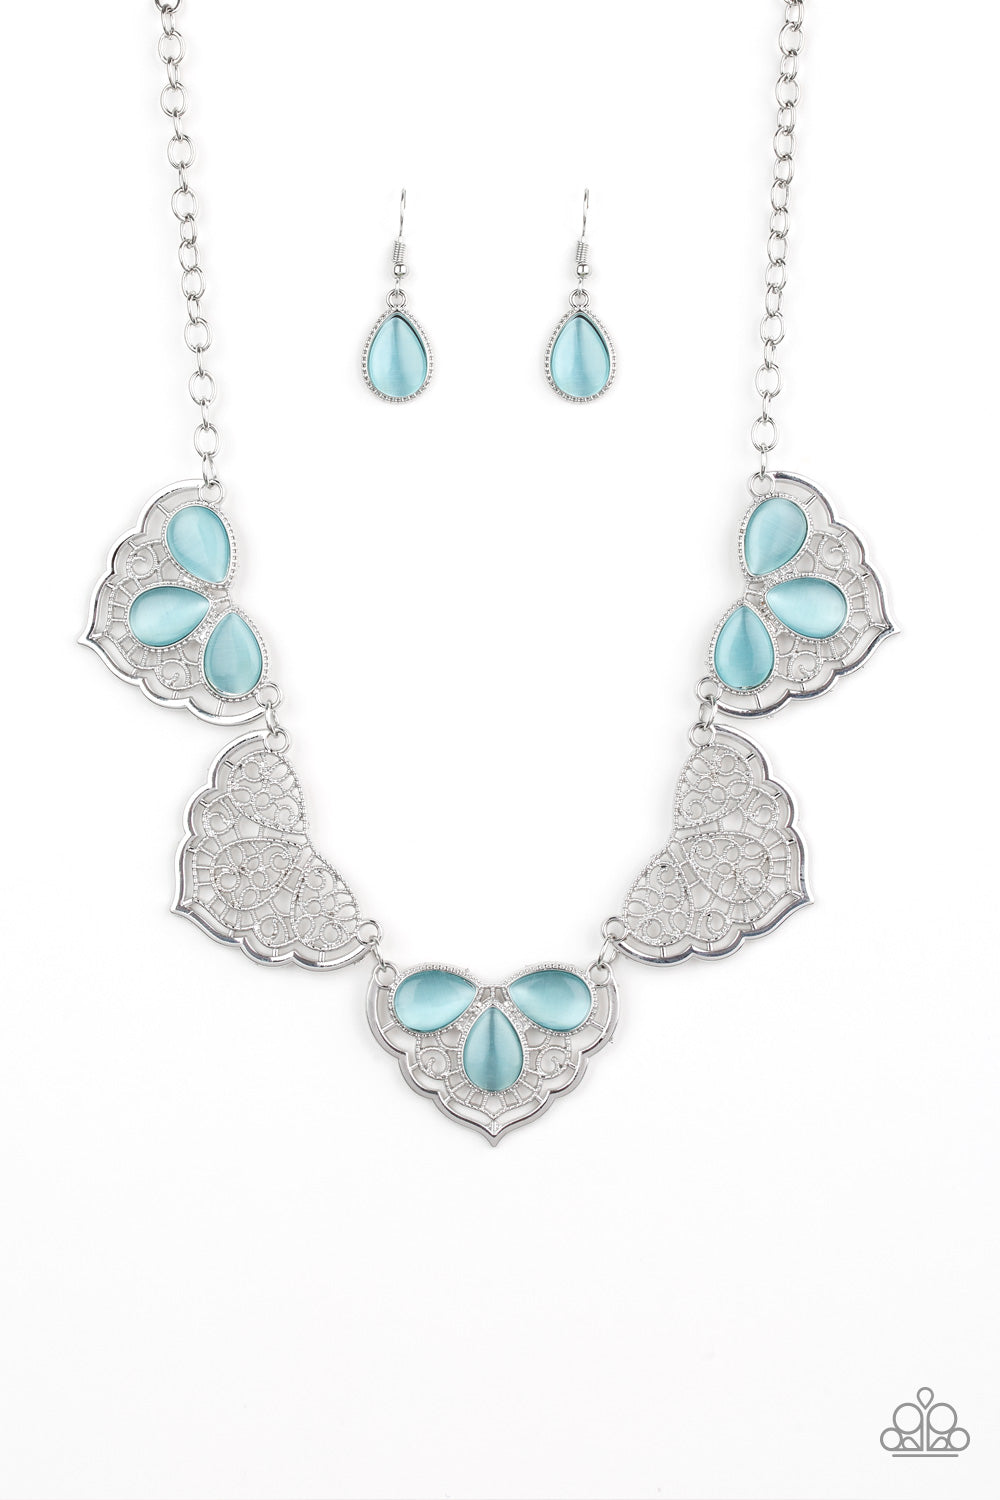 Paparazzi Accessories - East Coast Essence - Blue Necklace Set - JMJ Jewelry Collection